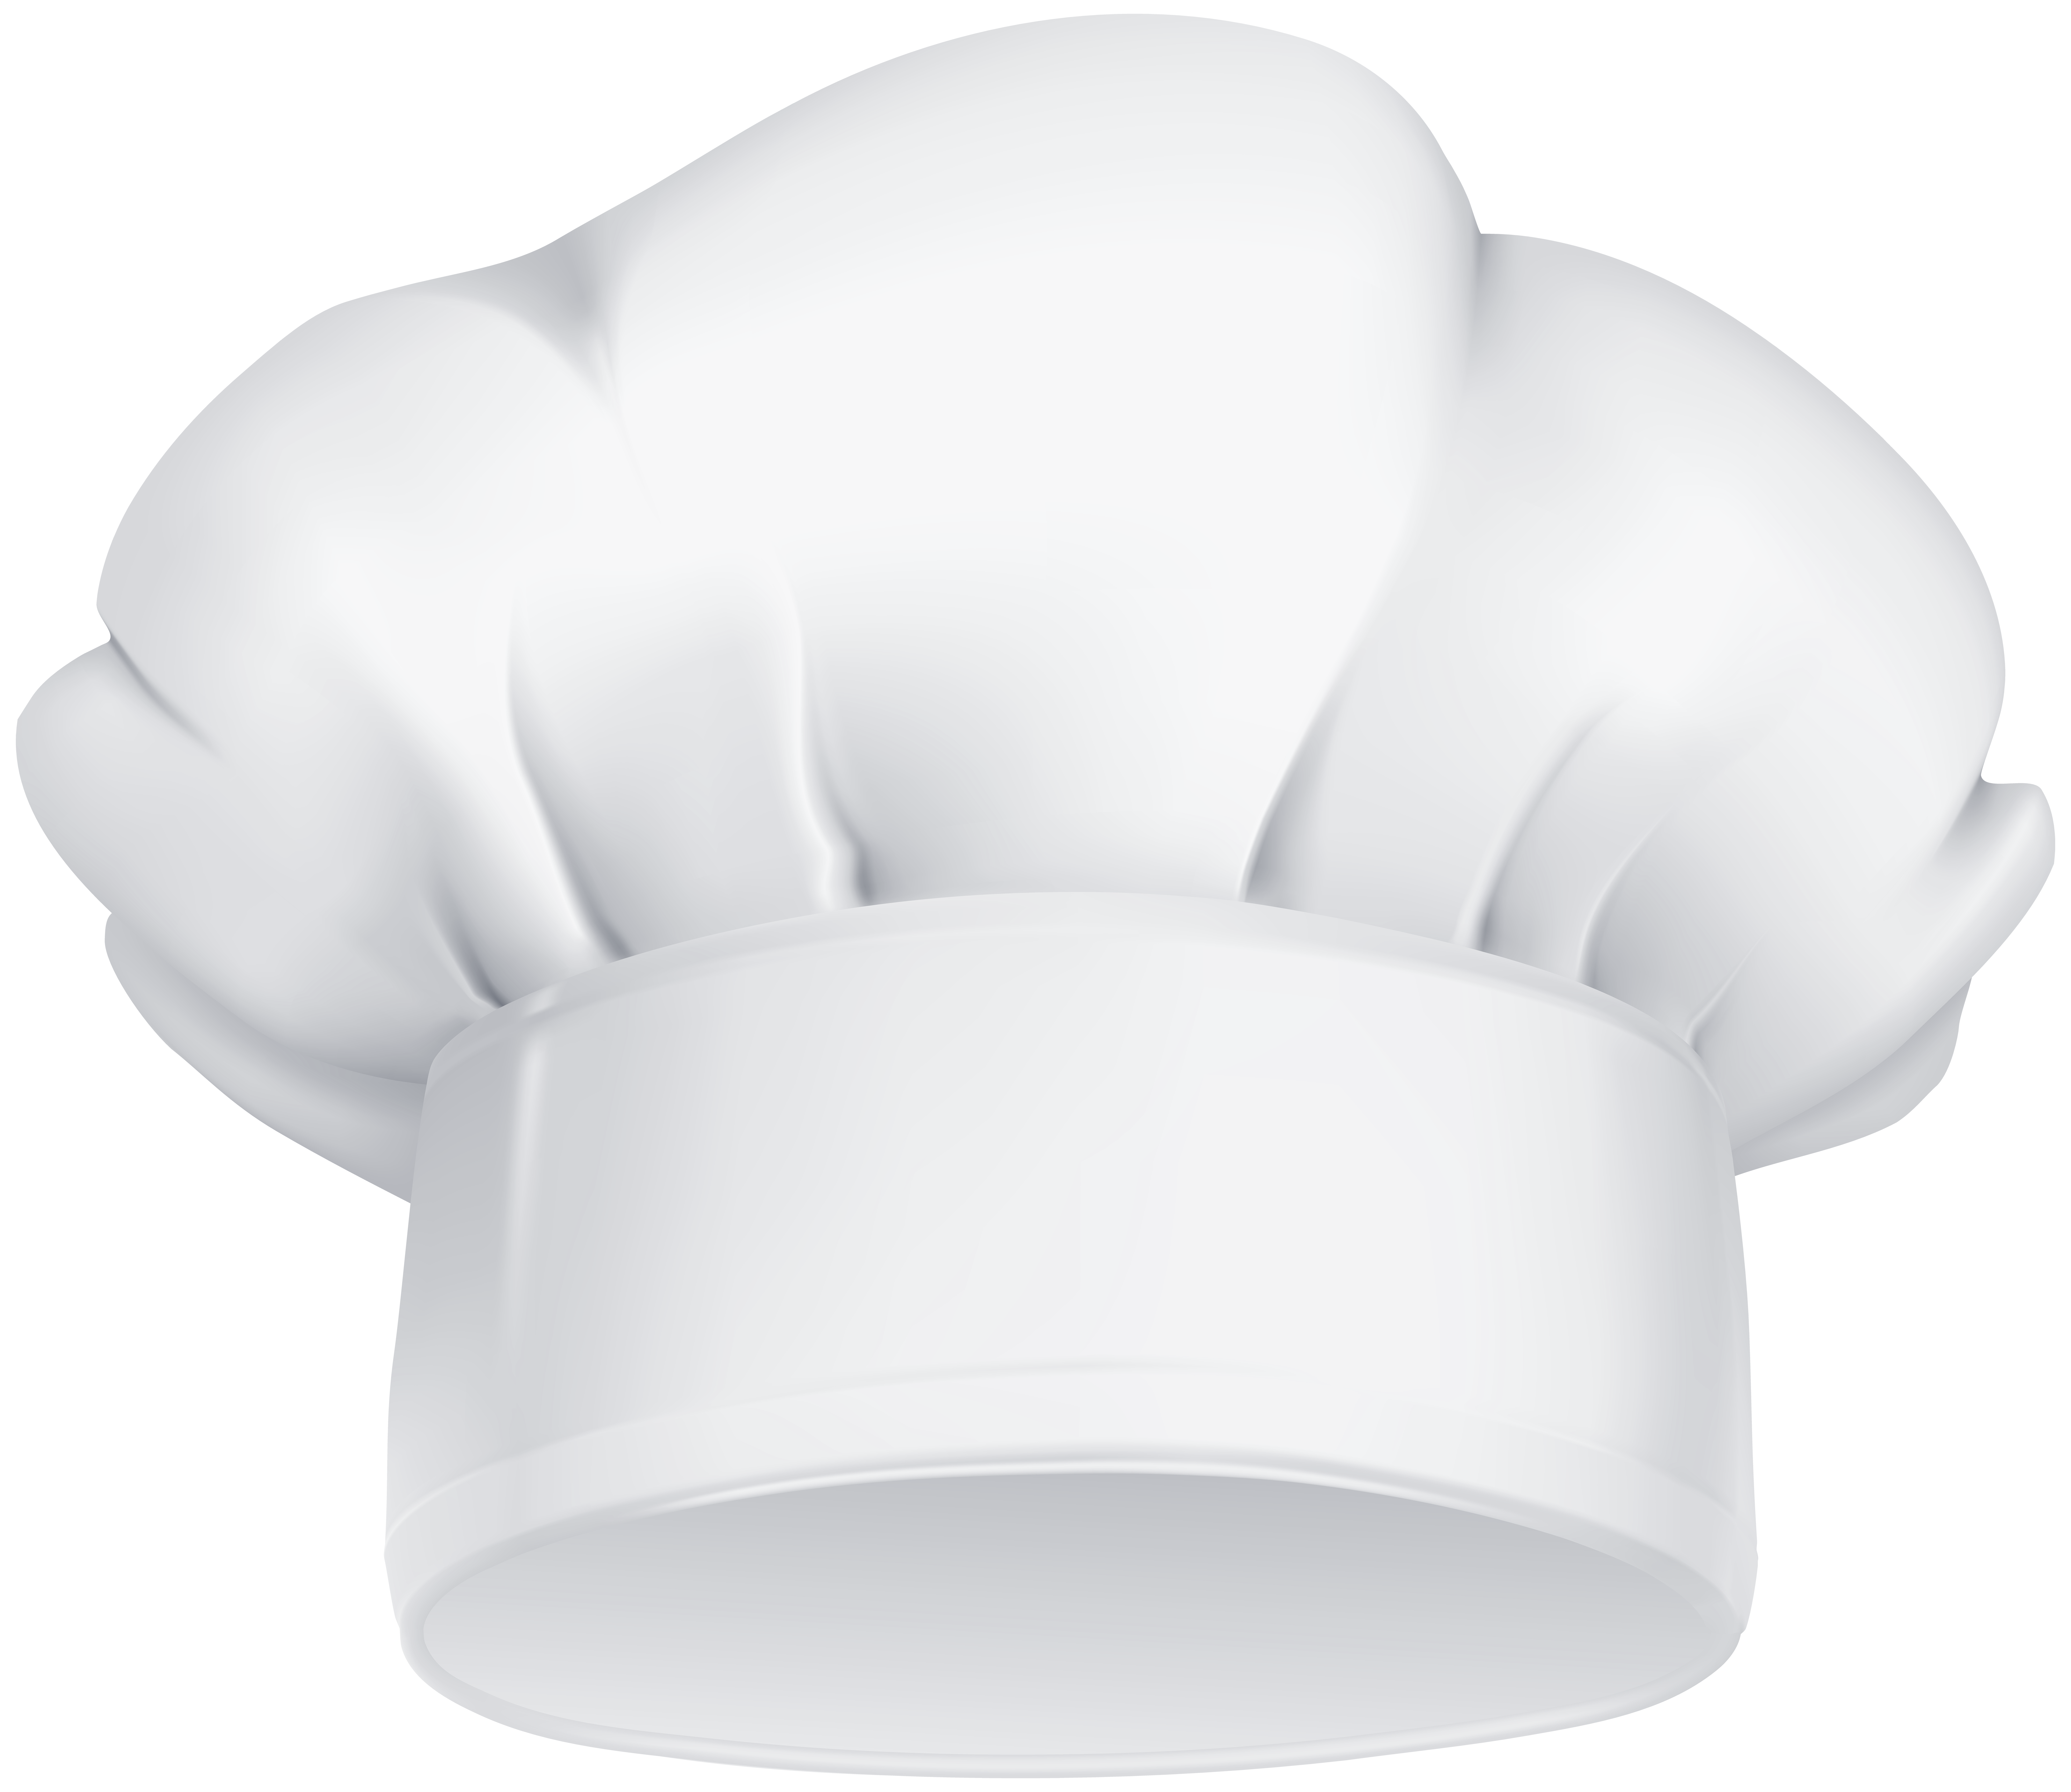 Chef Cap PNG Image